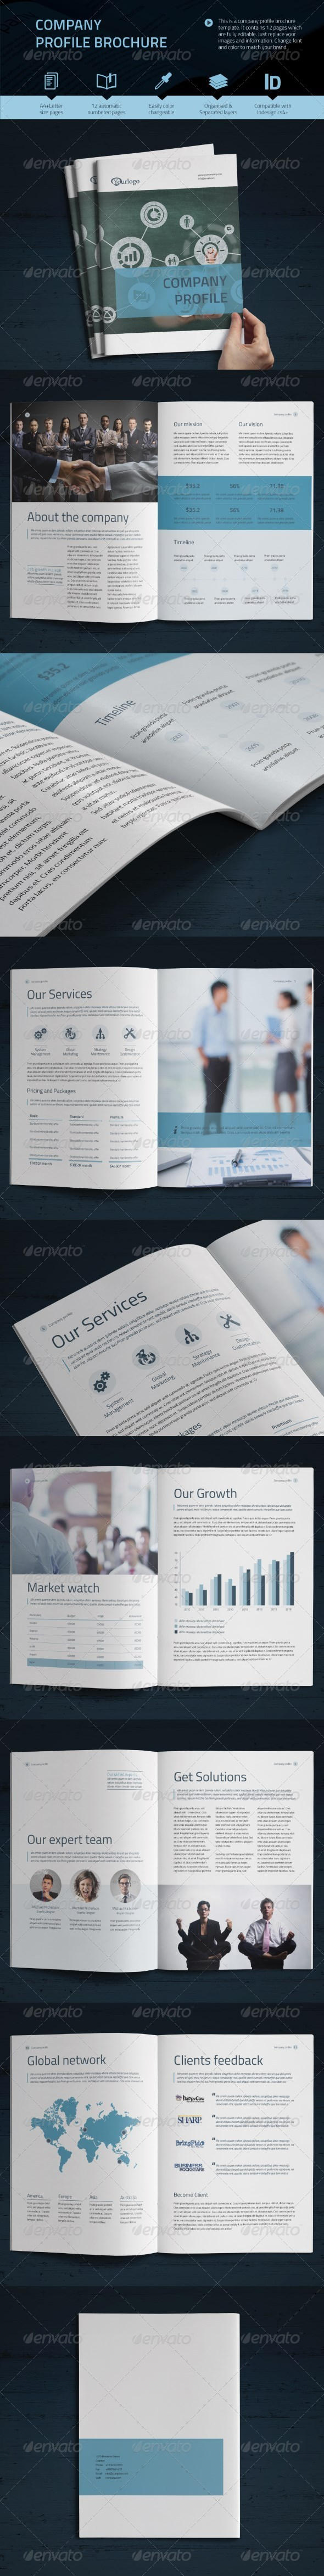 GraphicRiver Company Profile Vol.2 8218274